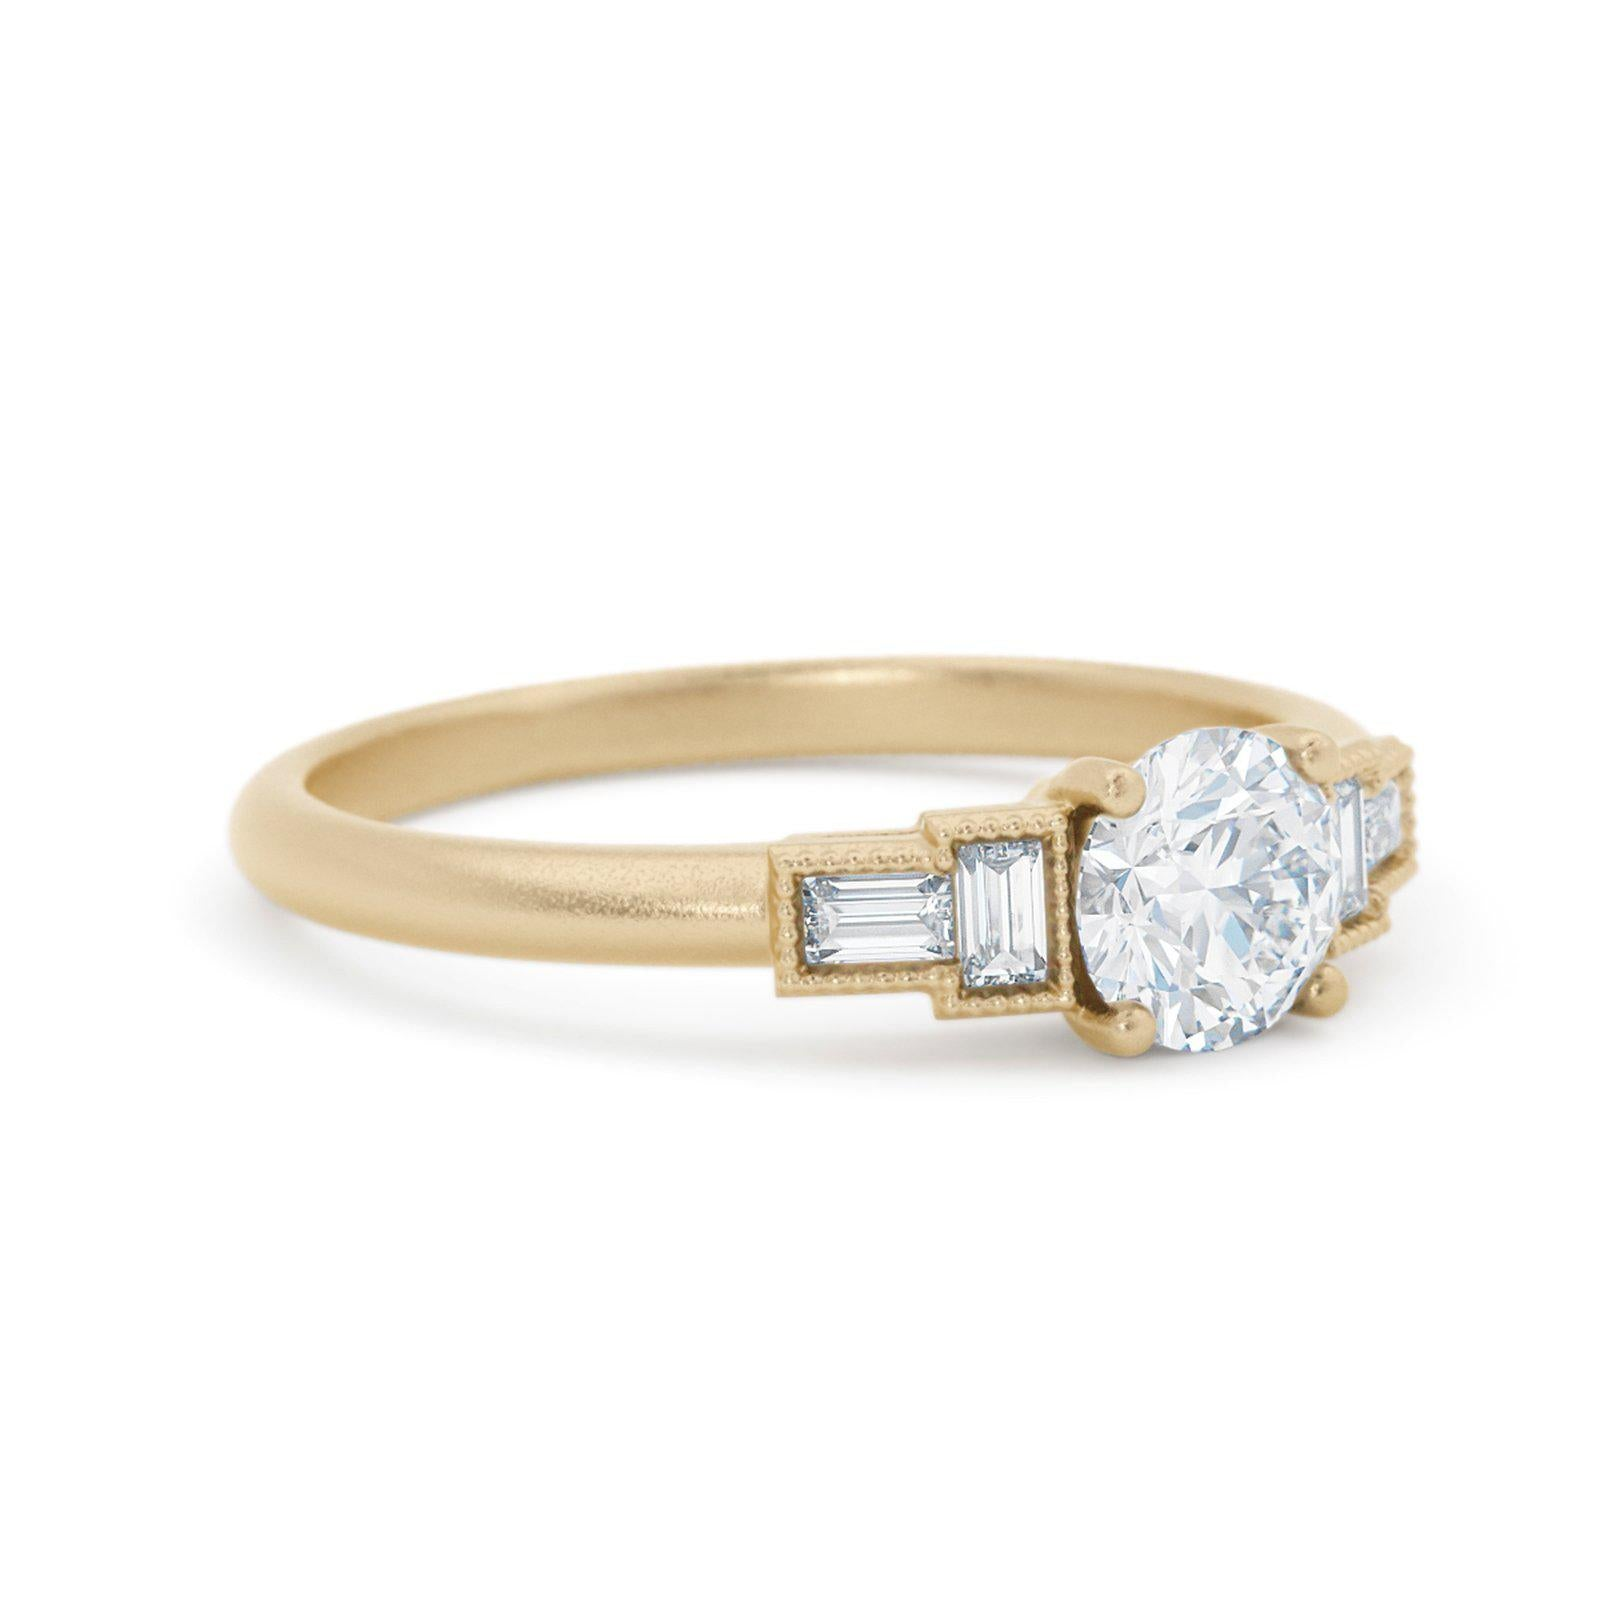 Marlow Art Deco Diamond Ring Baguette